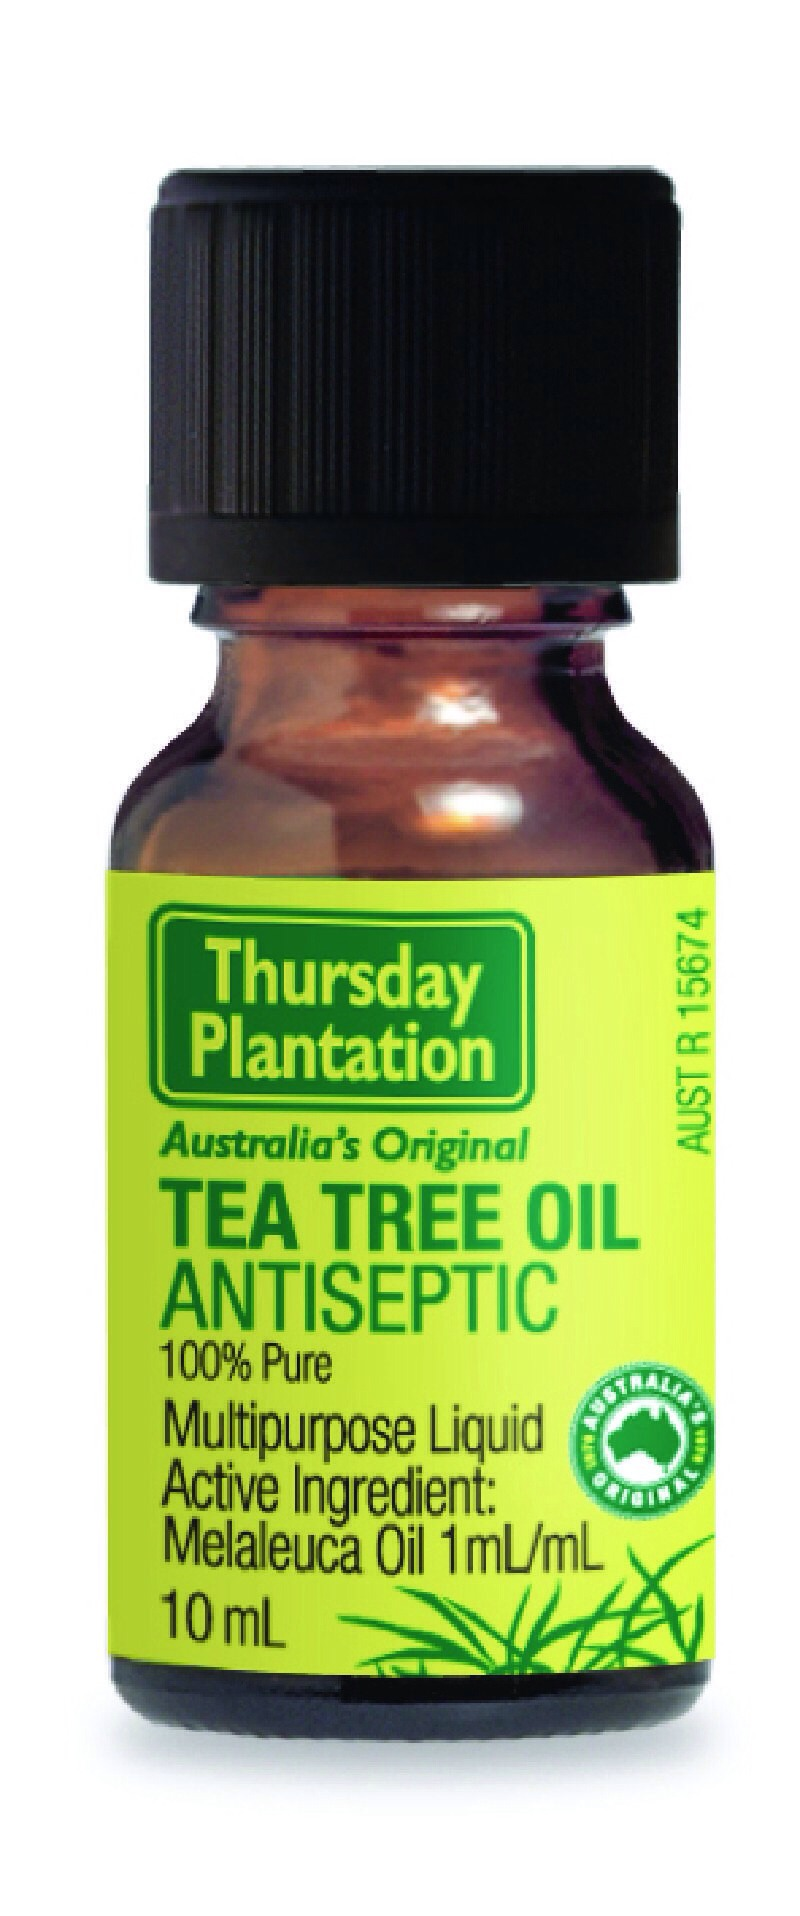 Put tea tree oil in your favorite shampoo and it will make you scalp flake free!